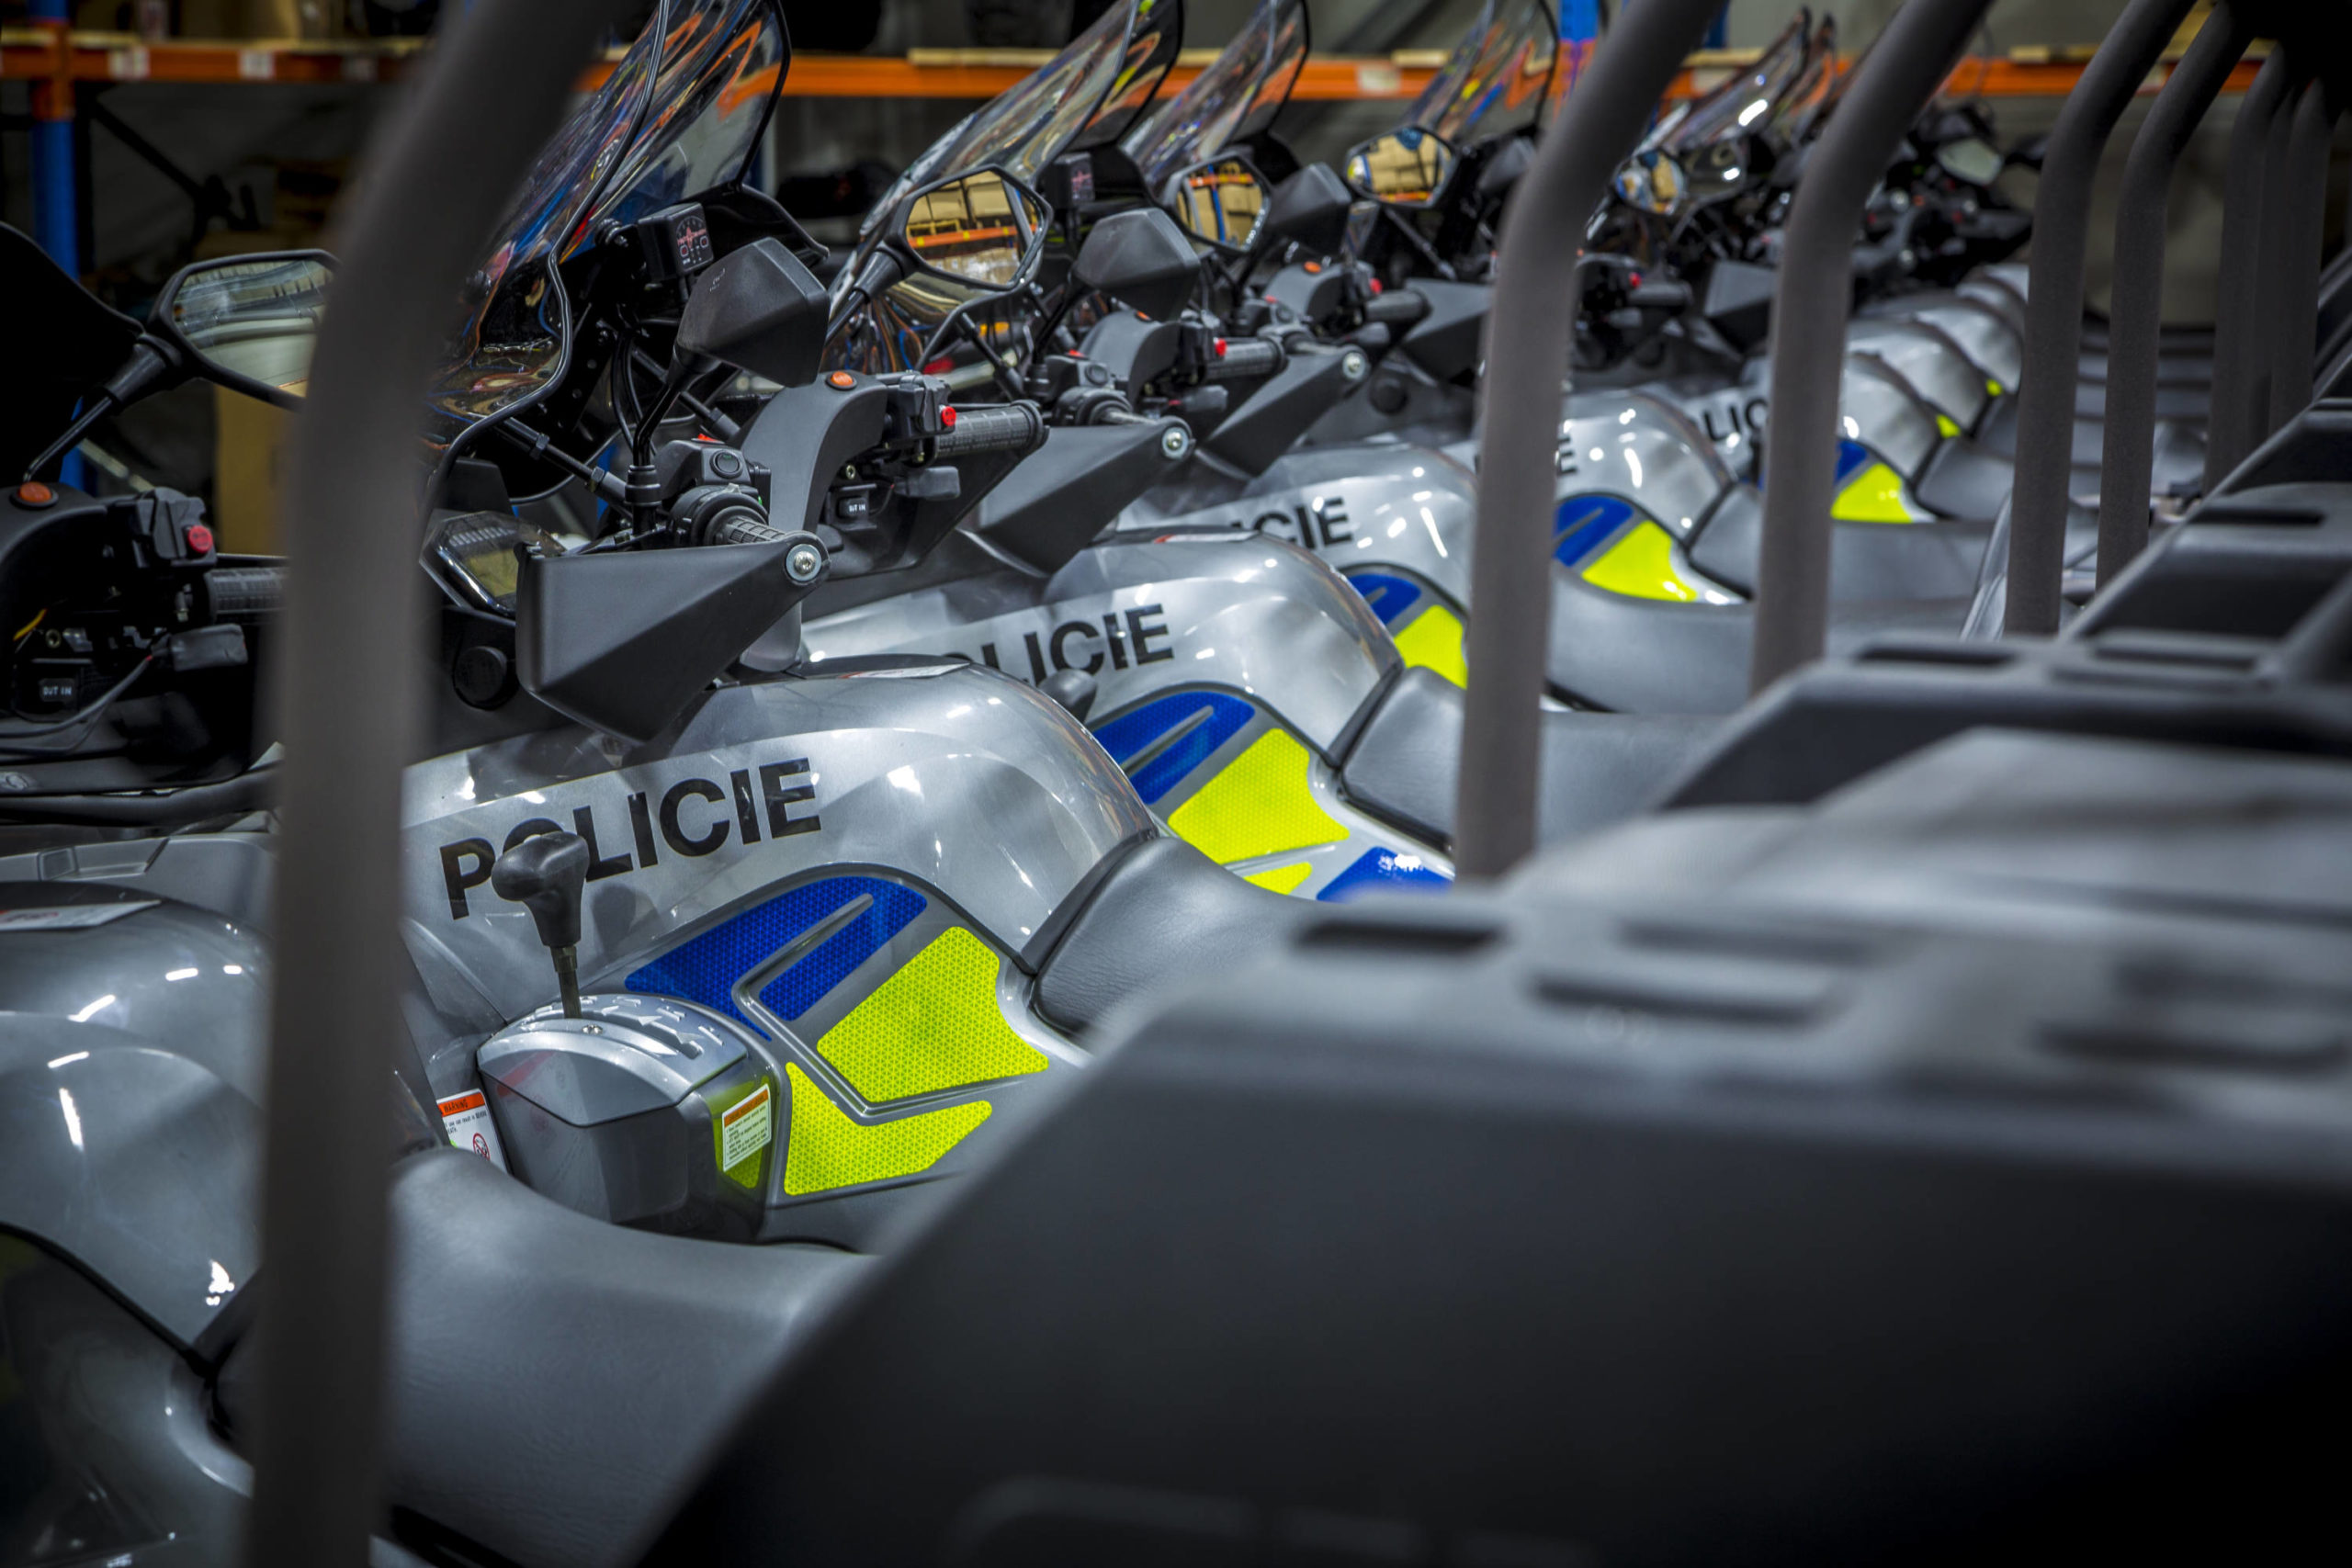 IPK factory supplied Czech police forces with customized quad bike frames